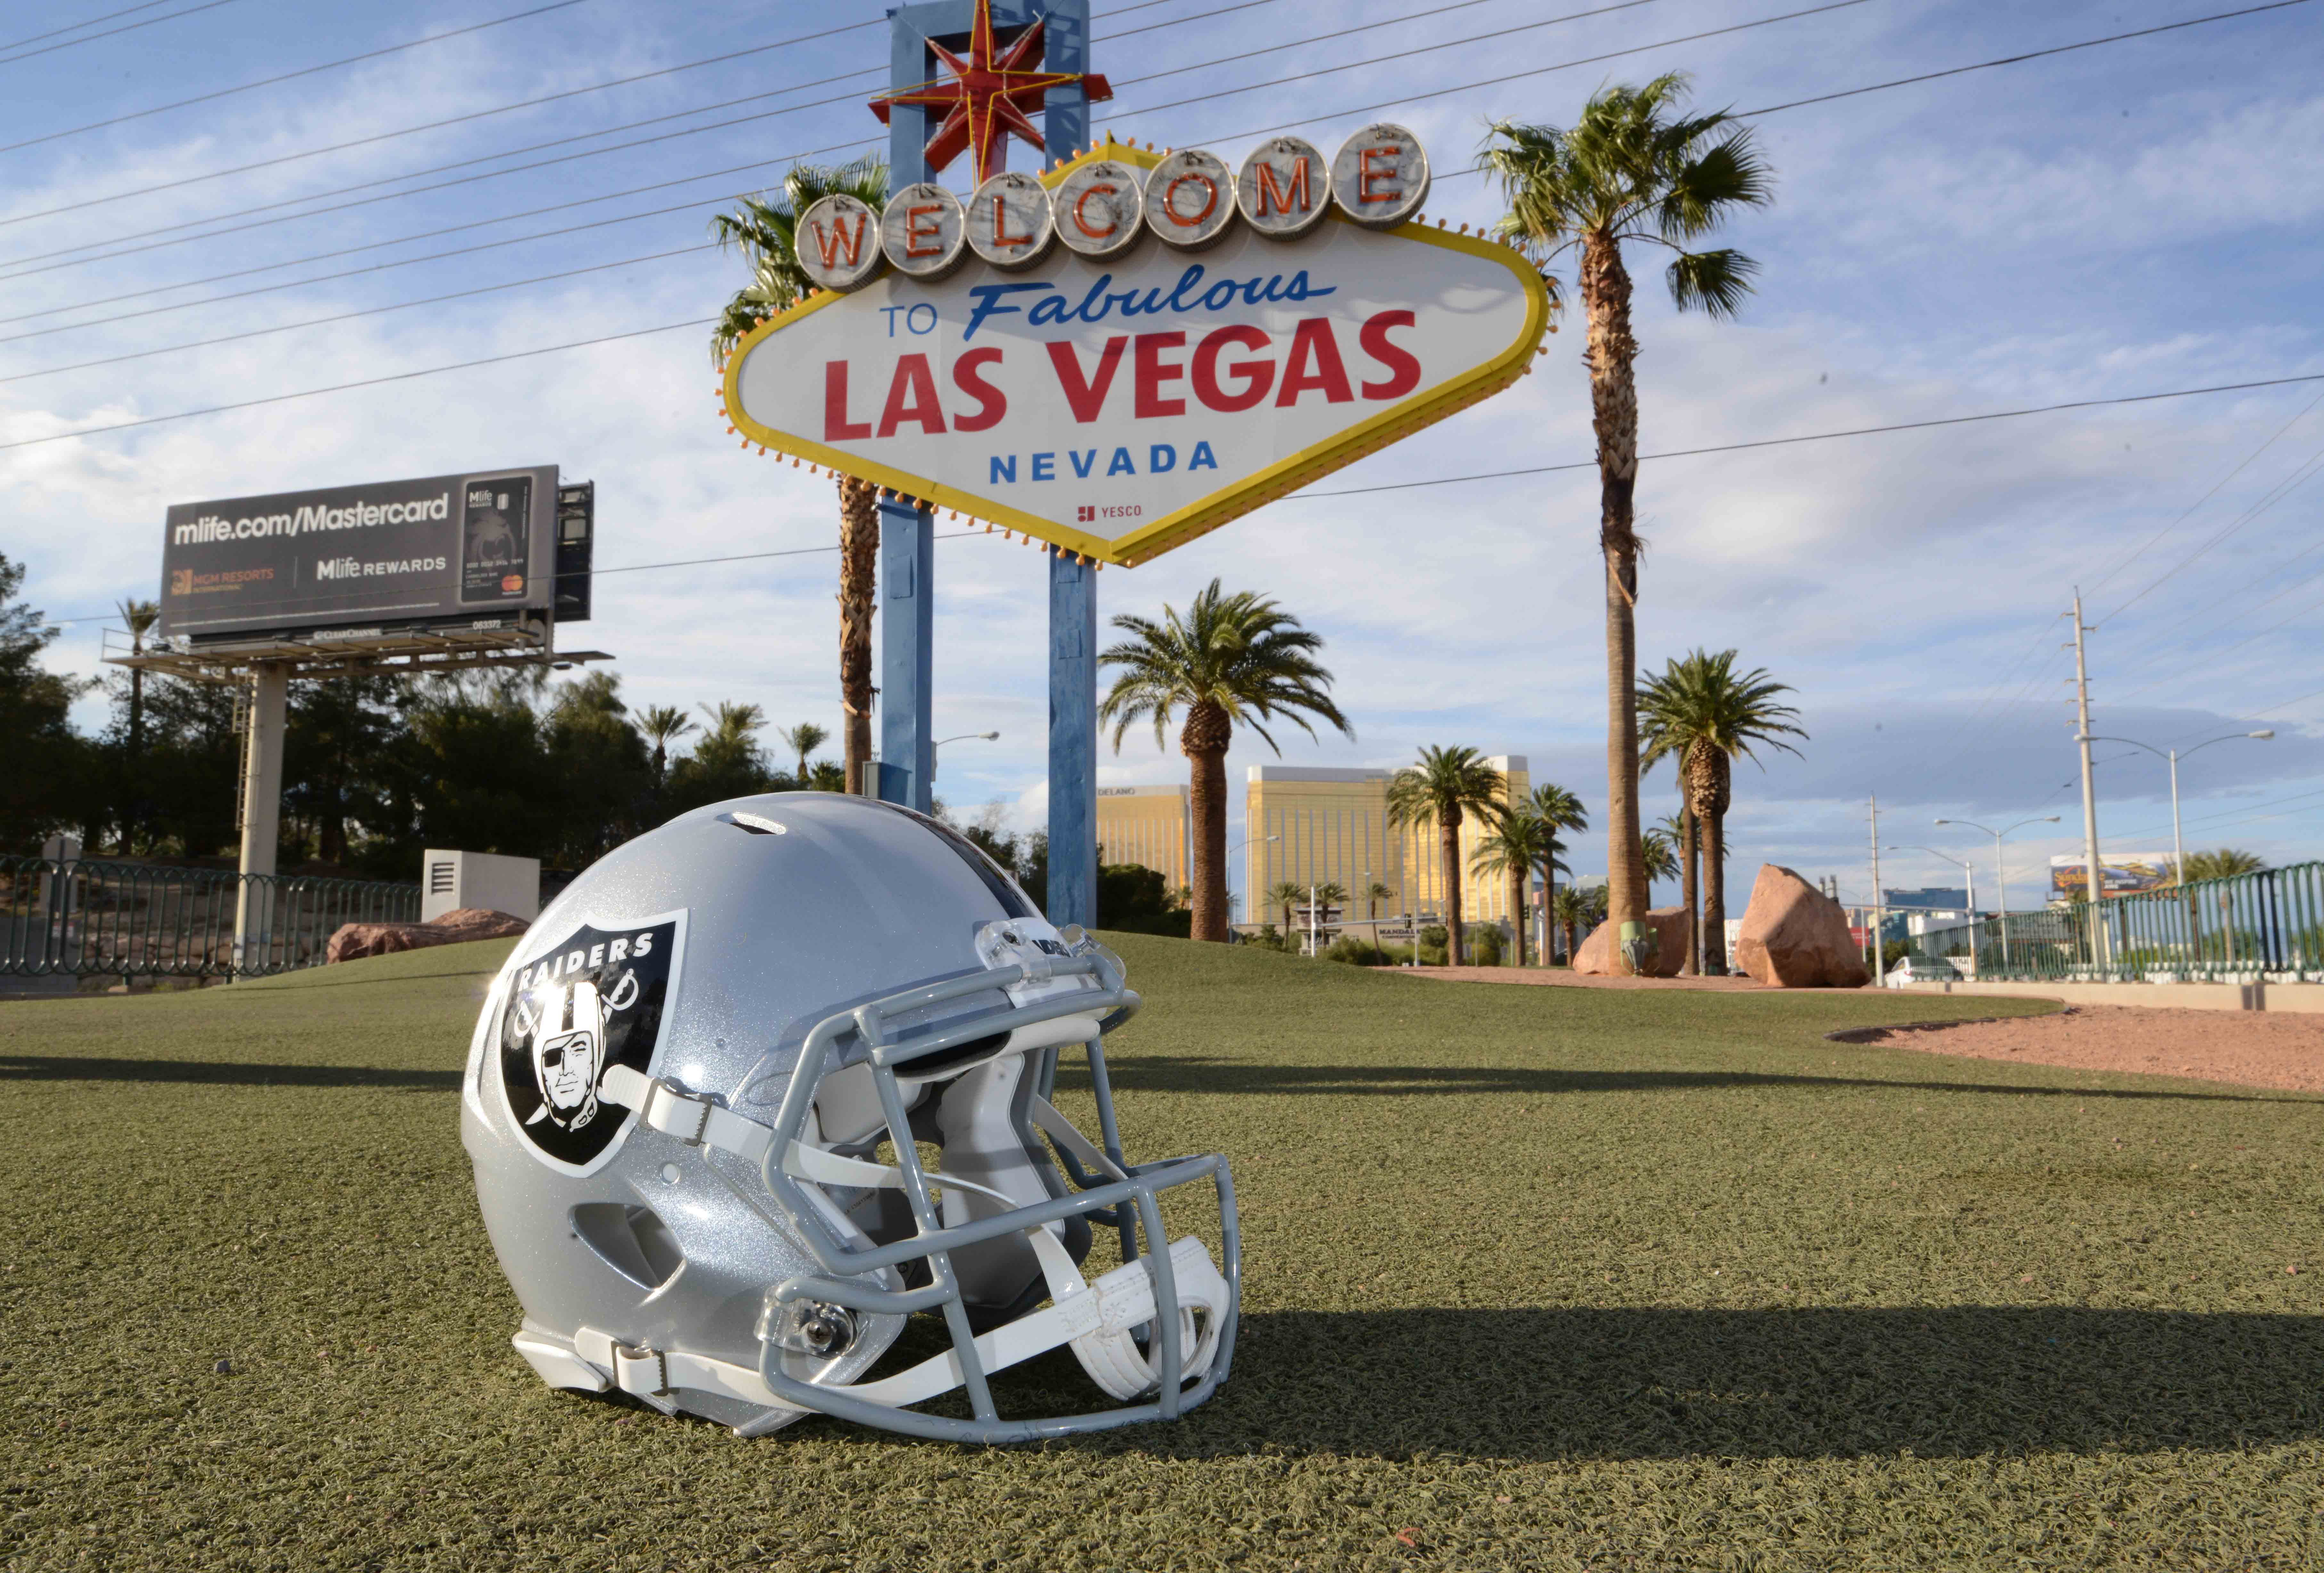 On the TunneySide of Sports November 27, 2017 #668 Up next... Gambling in Las Vegas!